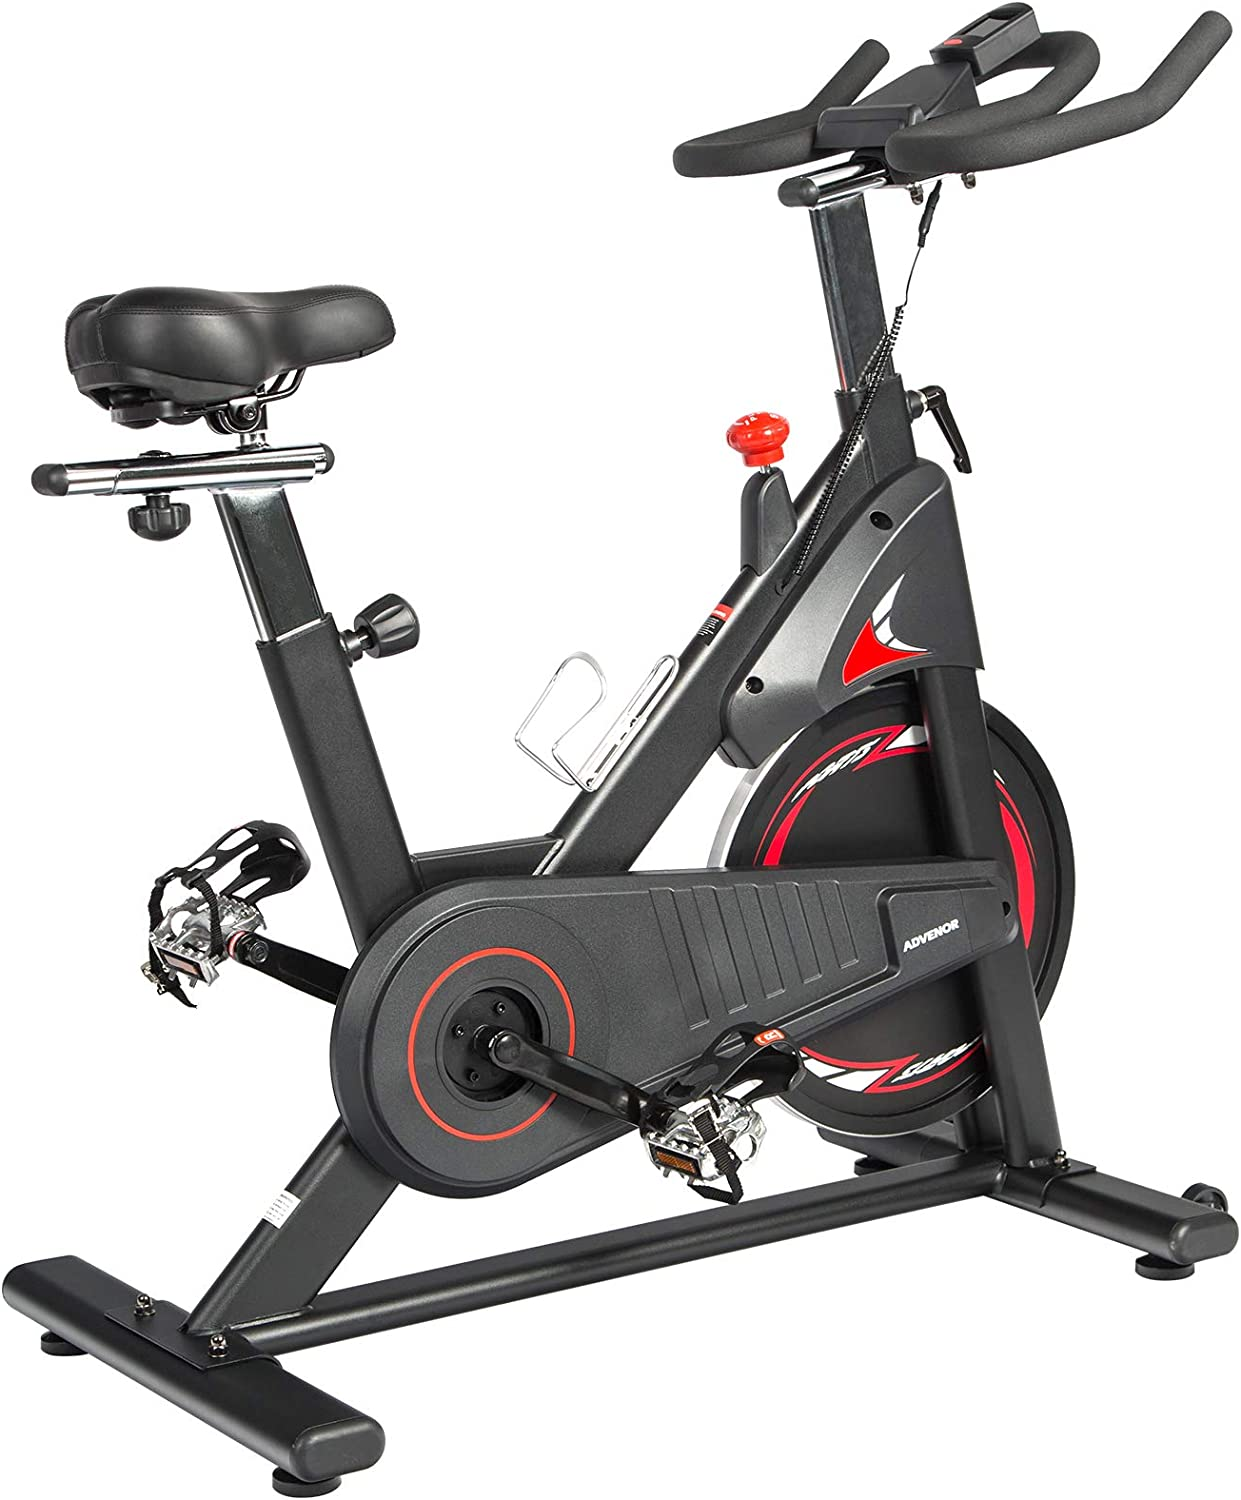 ADVENOR Magnetic Resistance Exercise Bike, Indoor Stationary Bikes for Home Workout, Quiet Belt Drive with LCD Monitor, Support up to 330 lbs, Flywheel 35 lbs